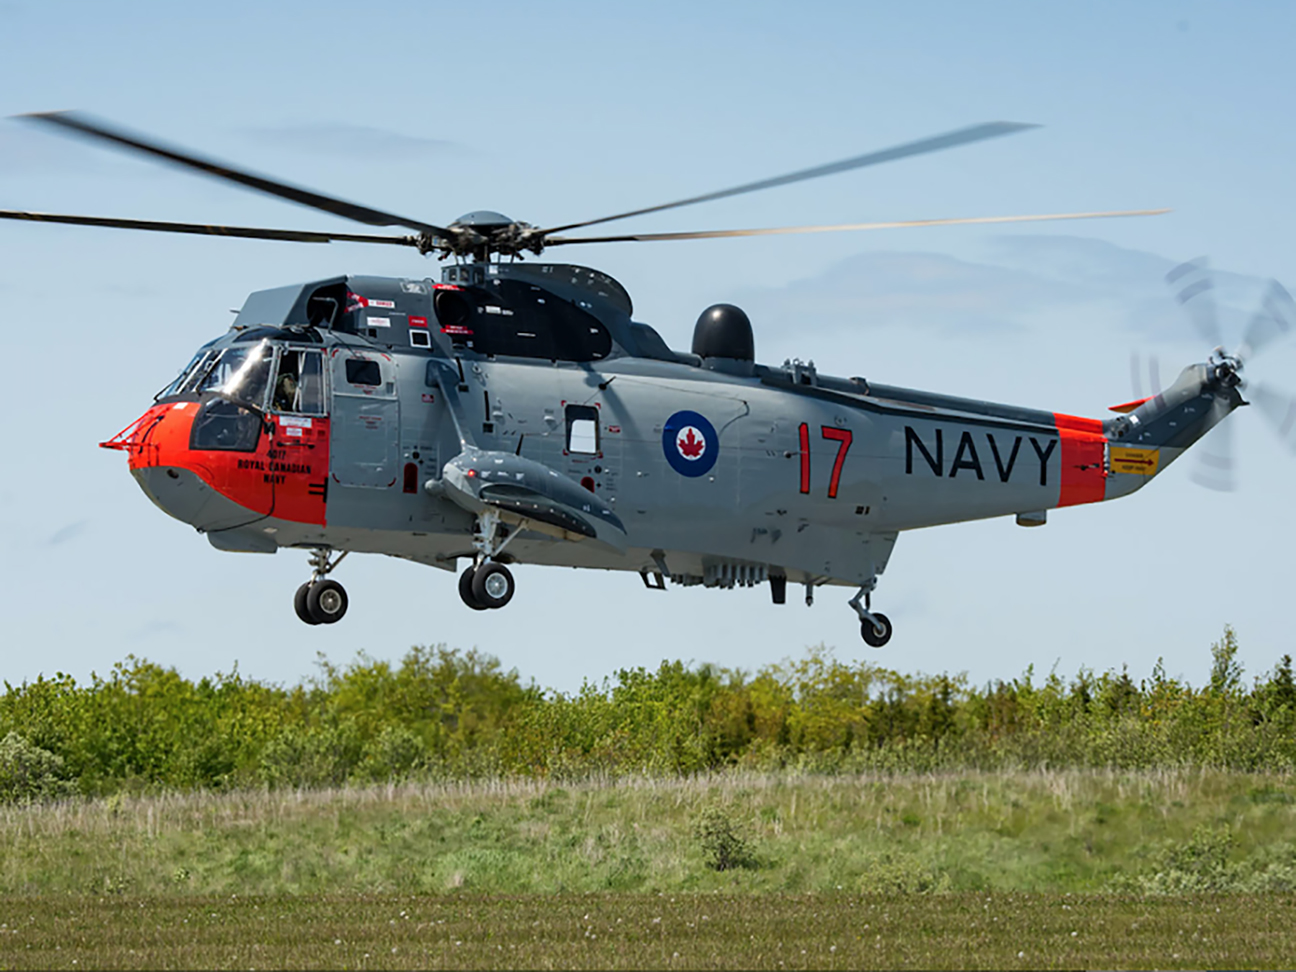 A dark grey helicopter with red, blue and white markings hovers over grass.